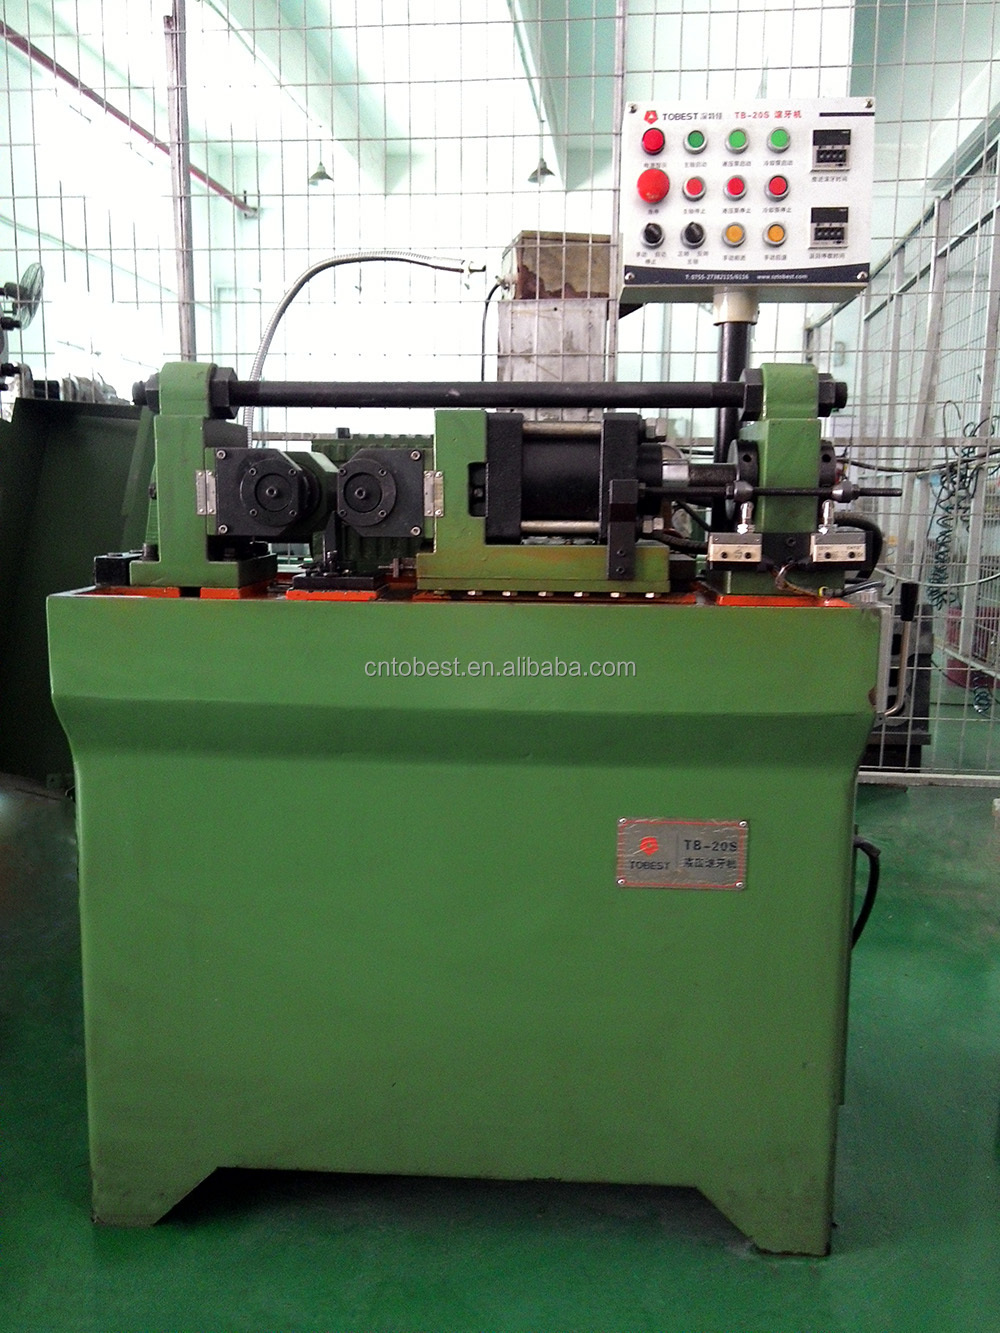 rebar threading machine8.jpg